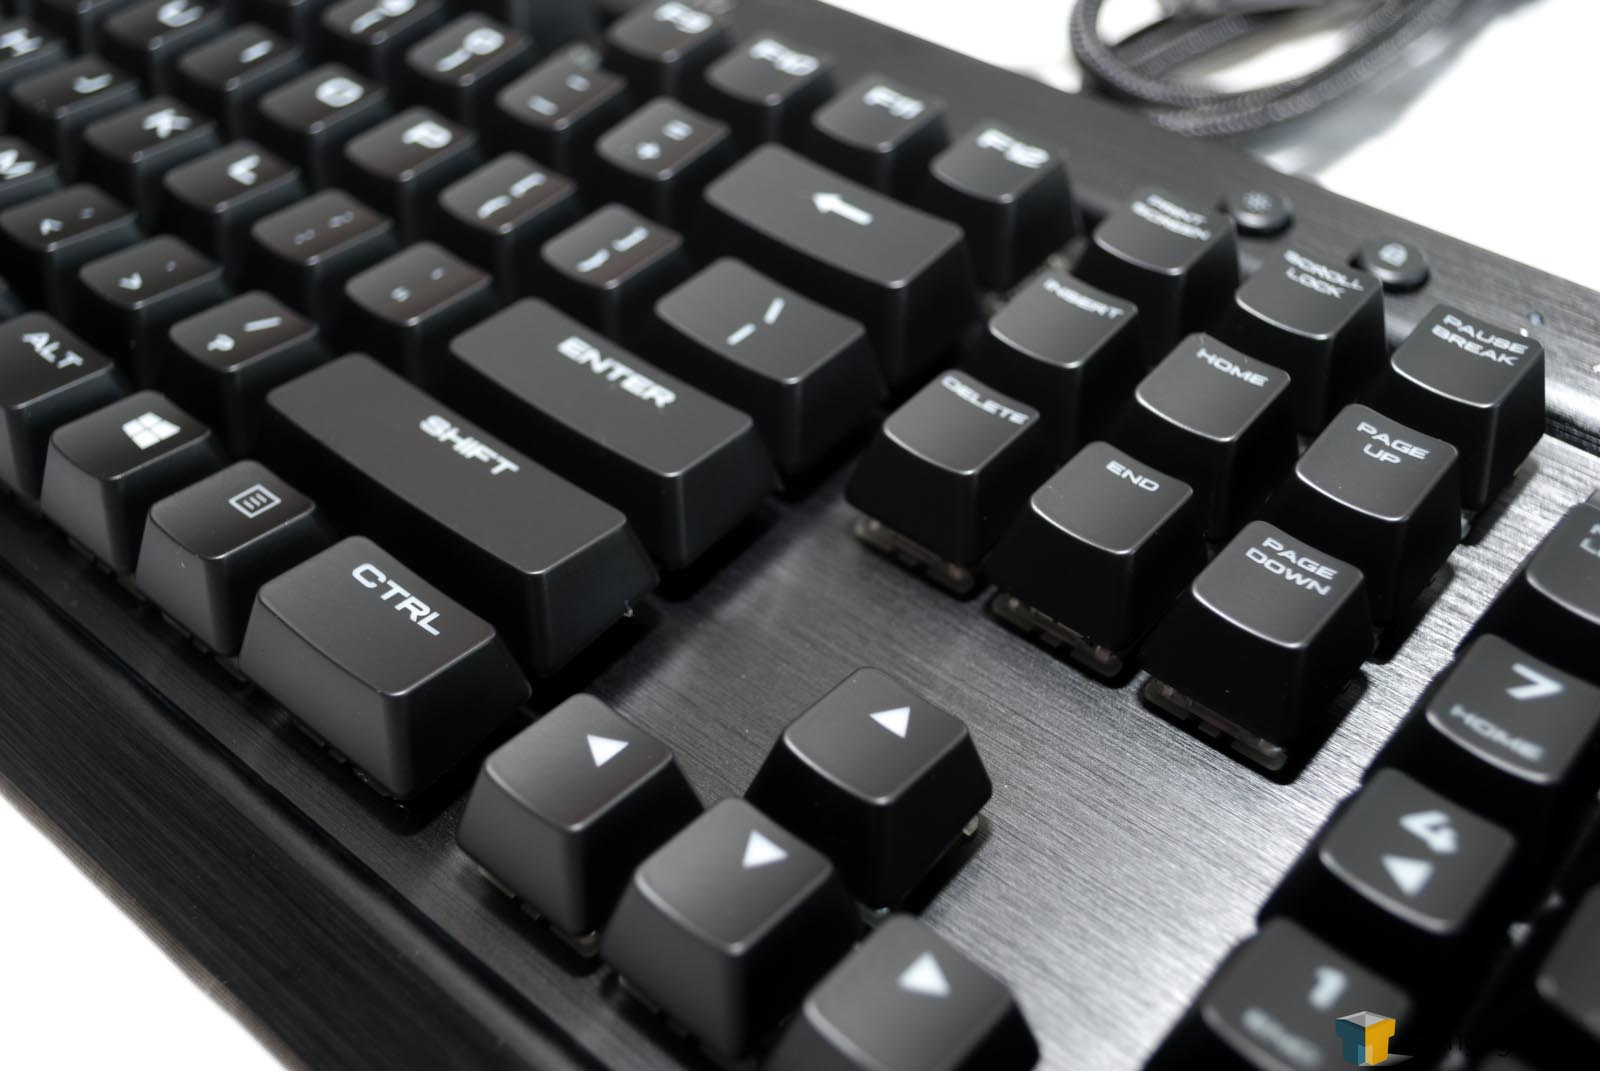 A Review Of The Refreshed Corsair K70 – The K70 RGB RAPIDFIRE